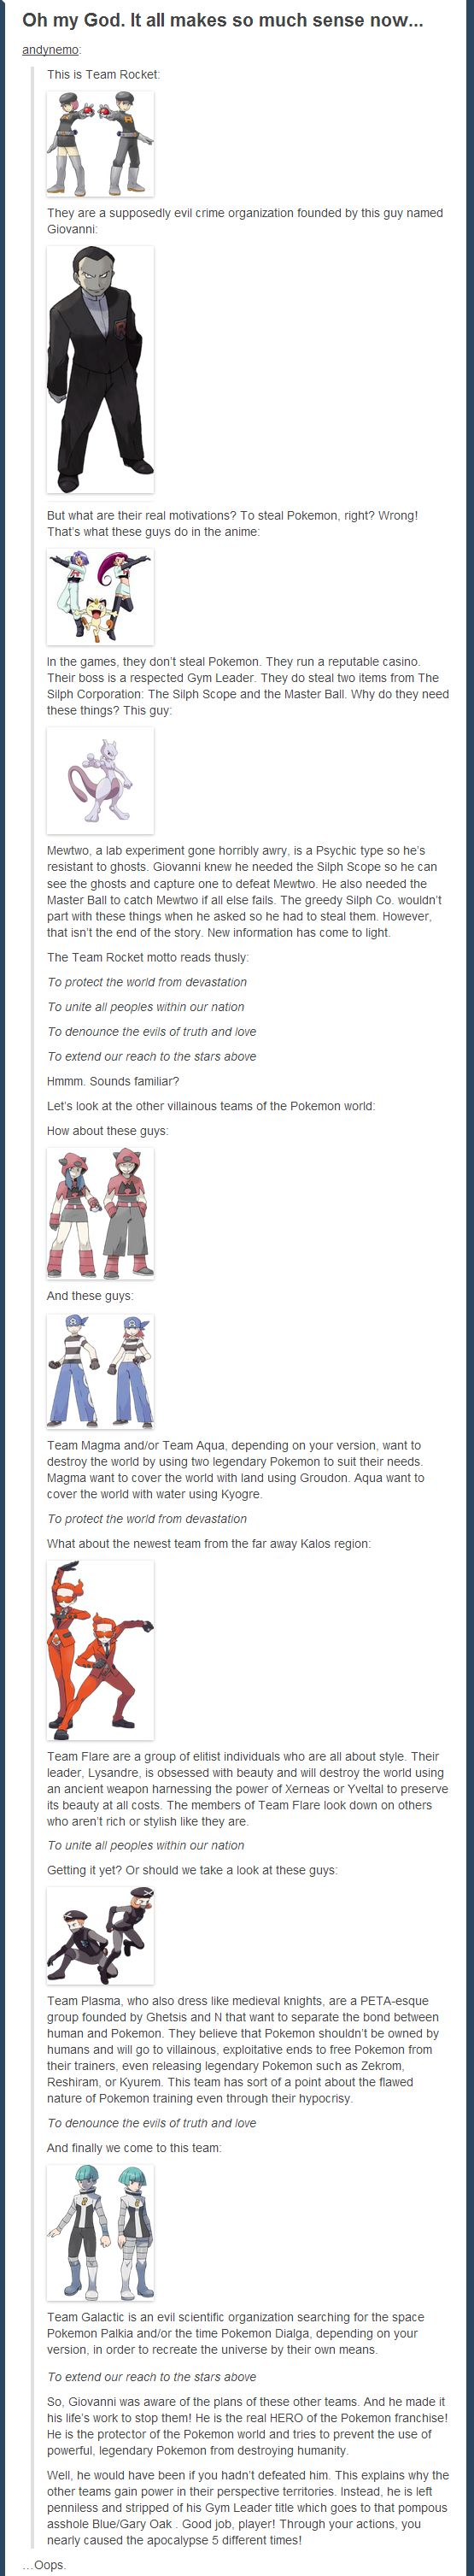 Wow, I will never look at Team Rocket the same again!